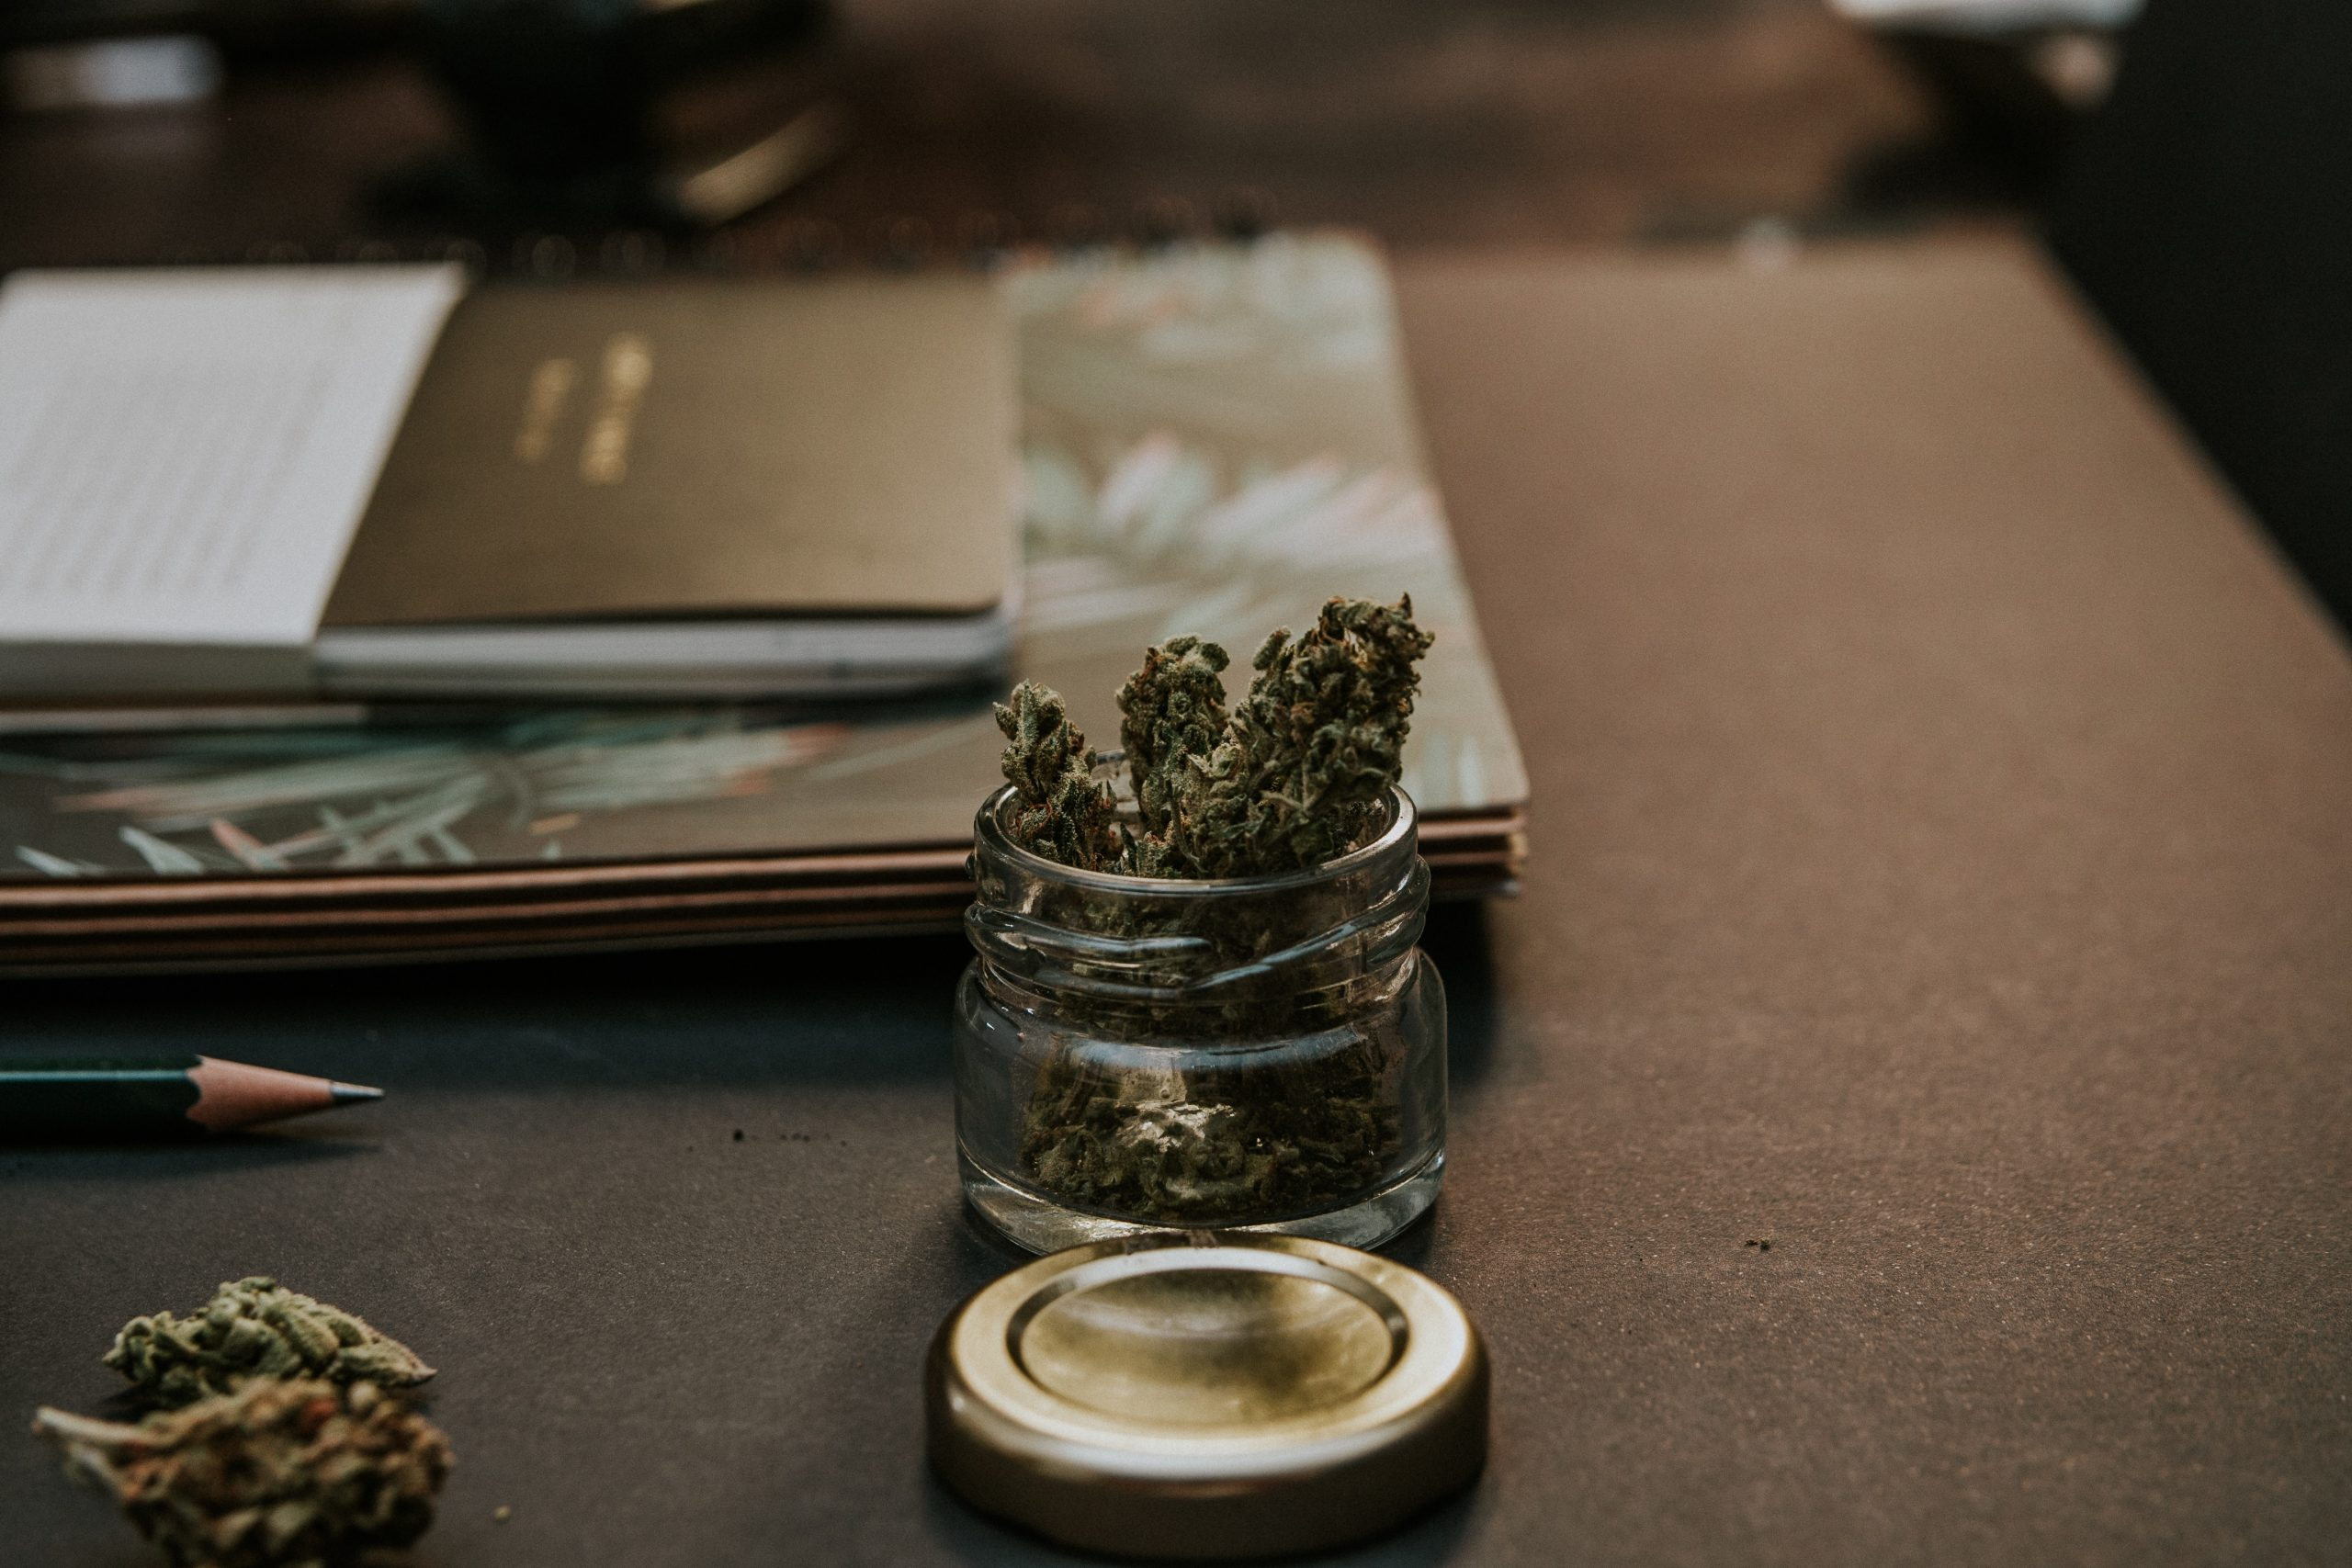 journal on desk next to weed